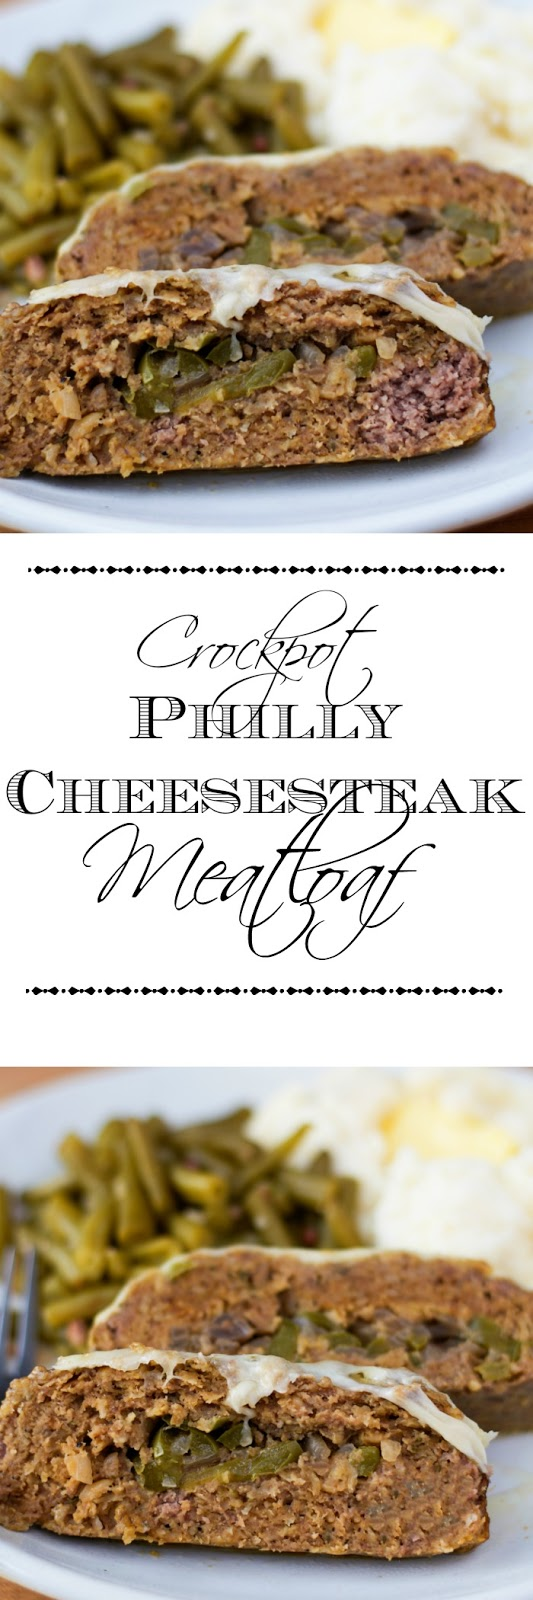 Crockpot Philly Cheesesteak Meatloaf Recipe - ~The Kitchen Wife~